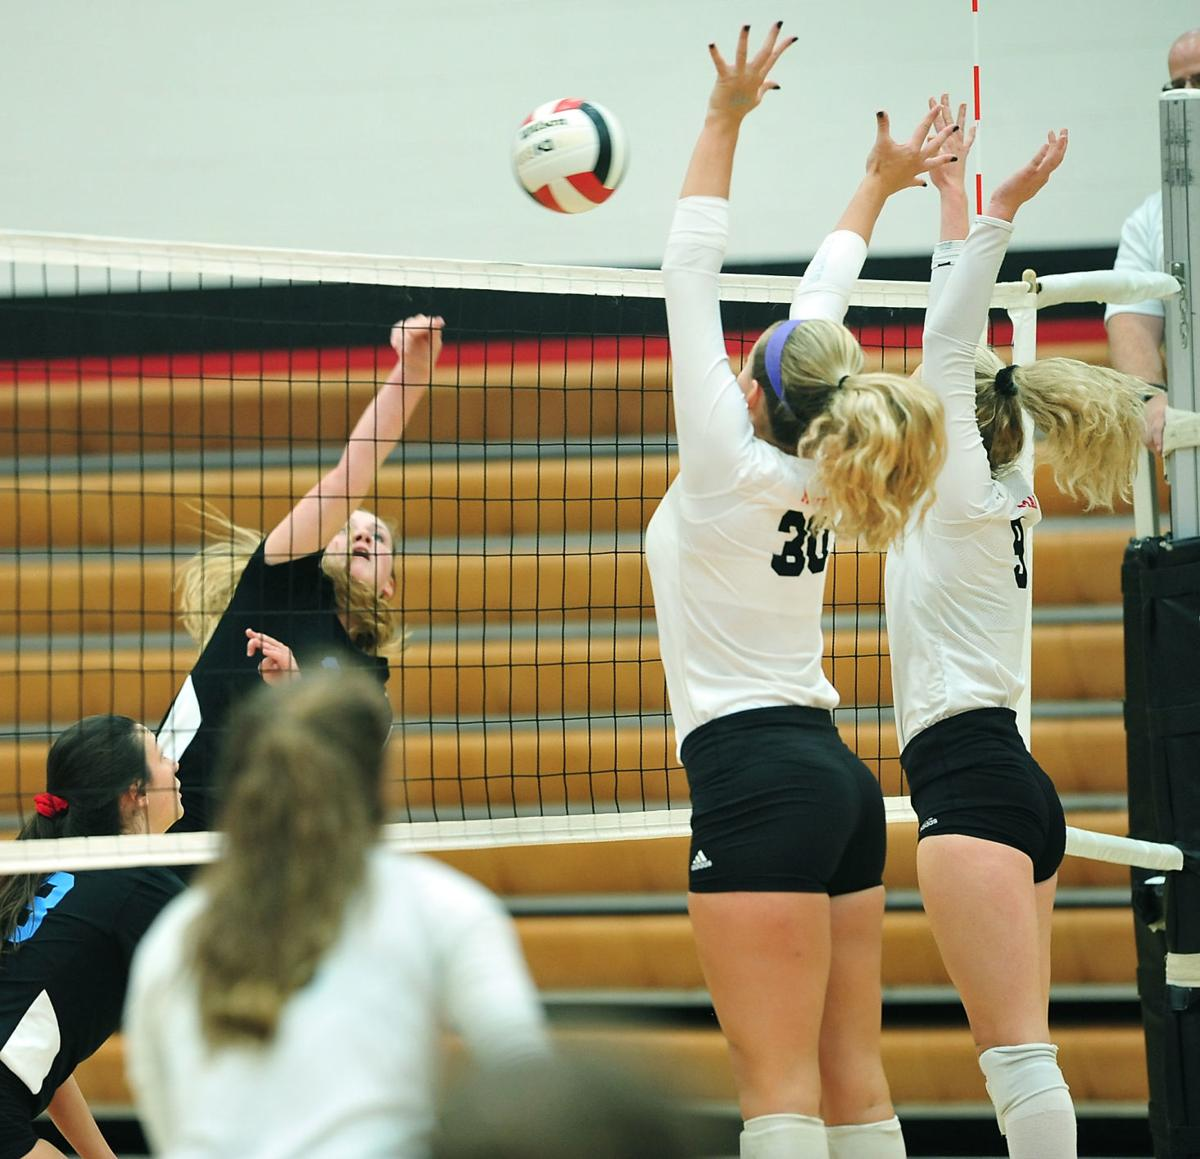 VOLLEYBALL: Heritage's Emma Whitehead and Maryville's Meg Mersman and Delaney White